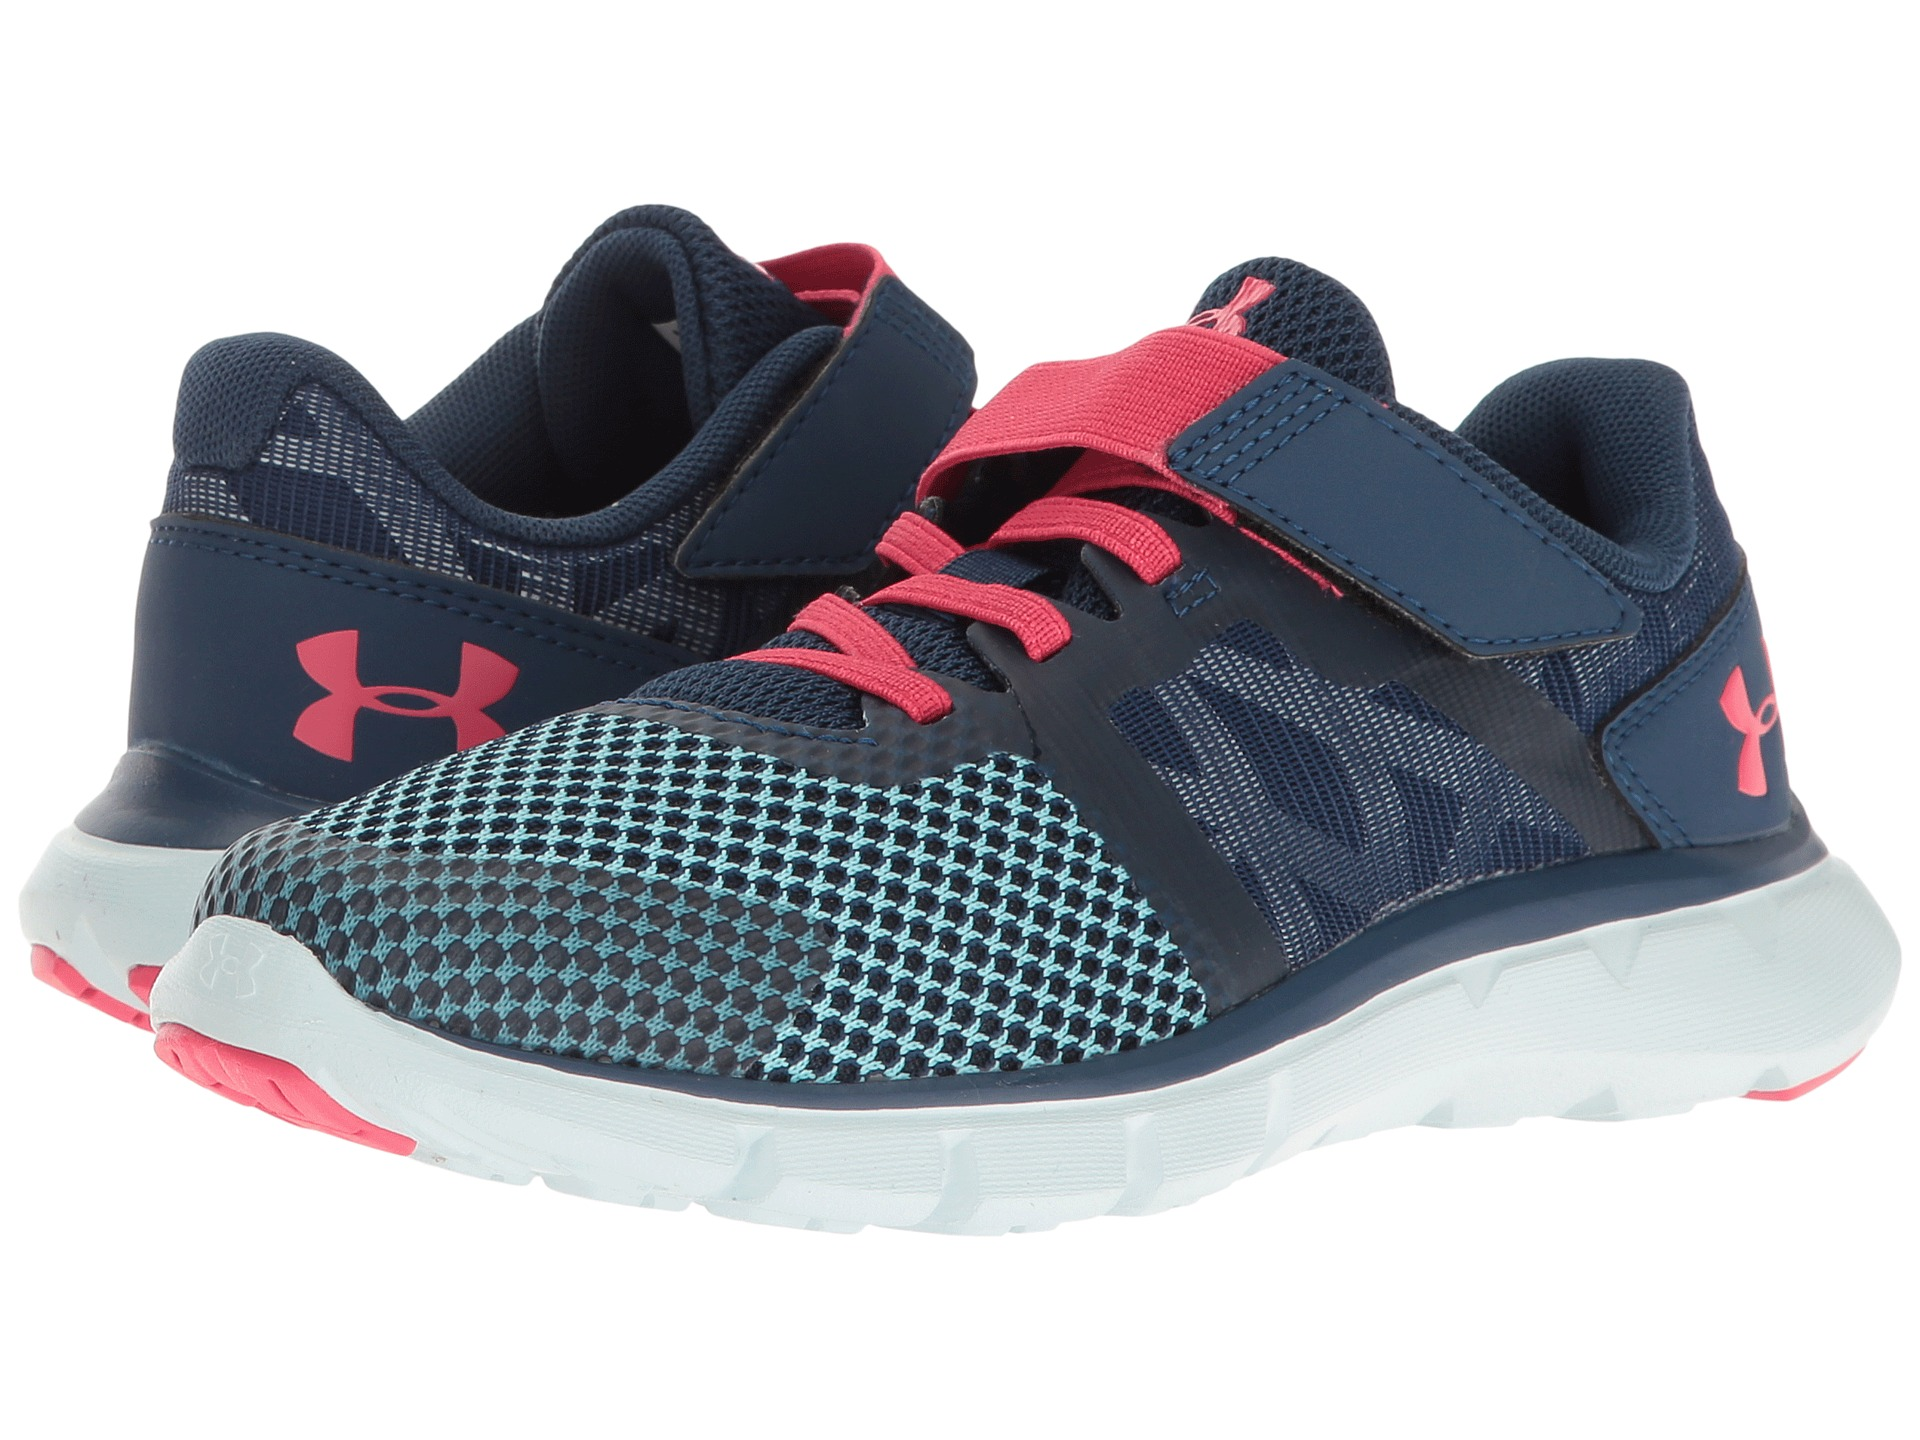 ecb360975e1 under armour youth running shoes cheap > OFF57% The Largest Catalog  Discounts